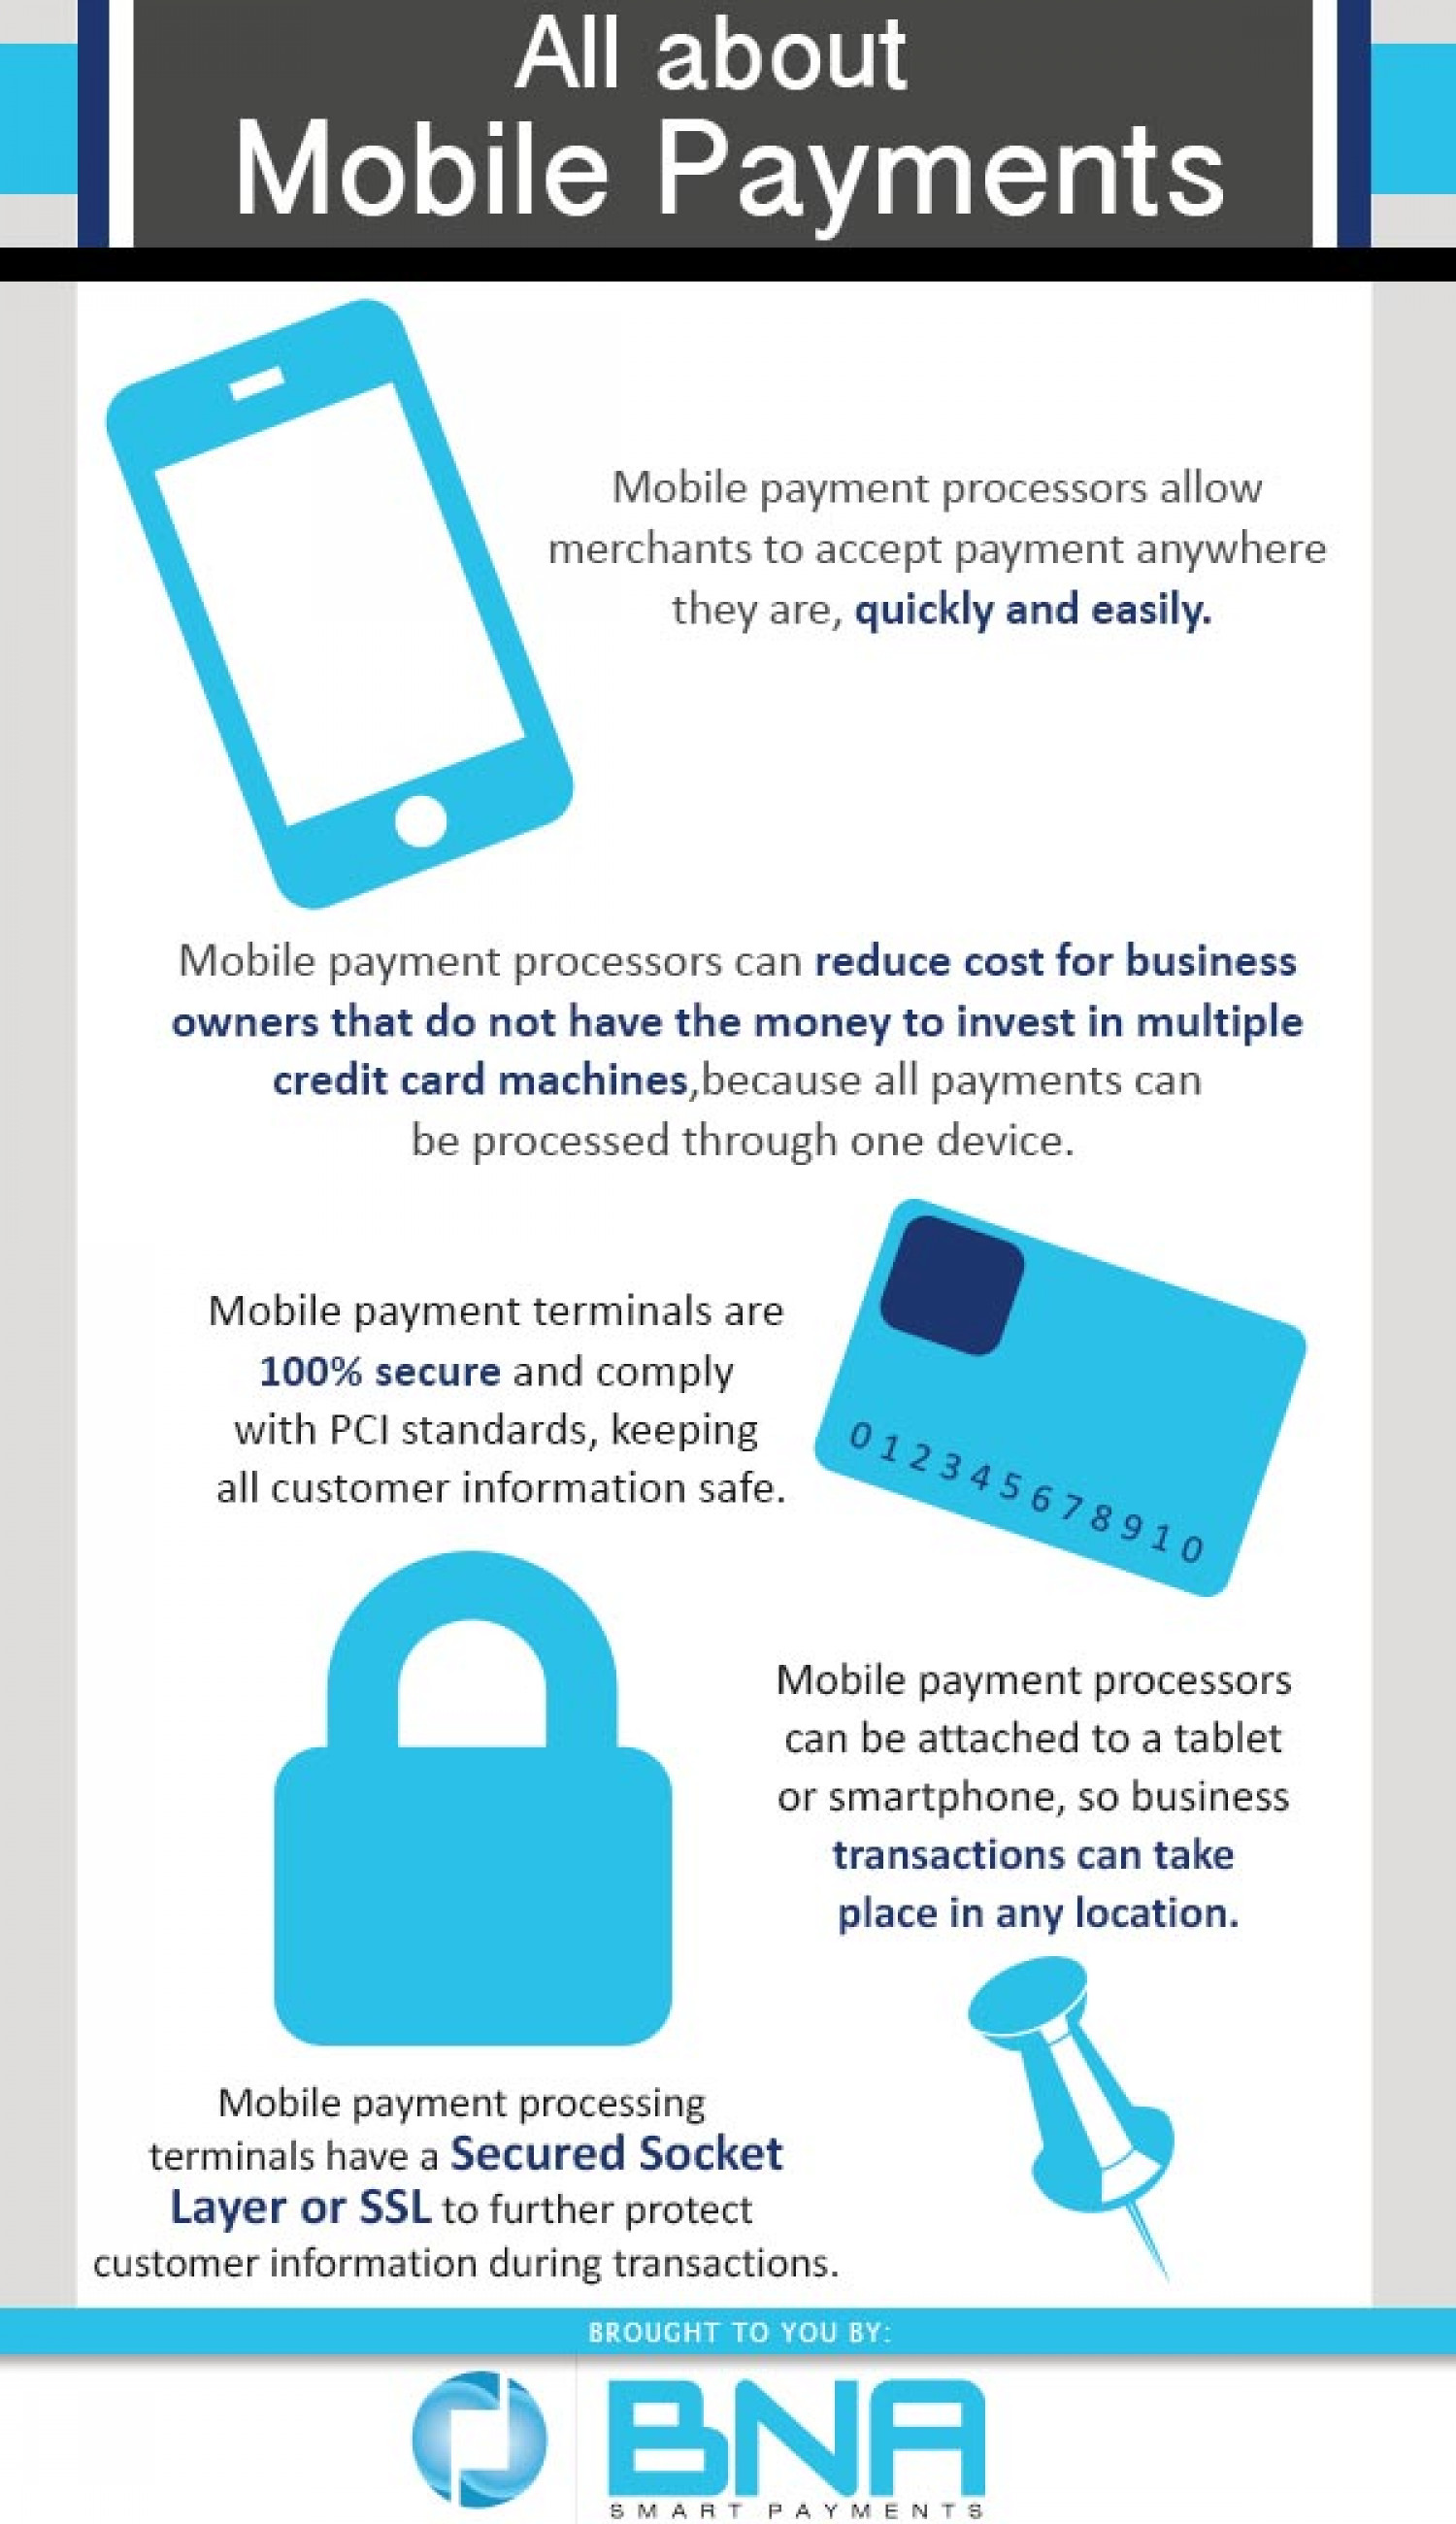 All About Mobile Payments Infographic